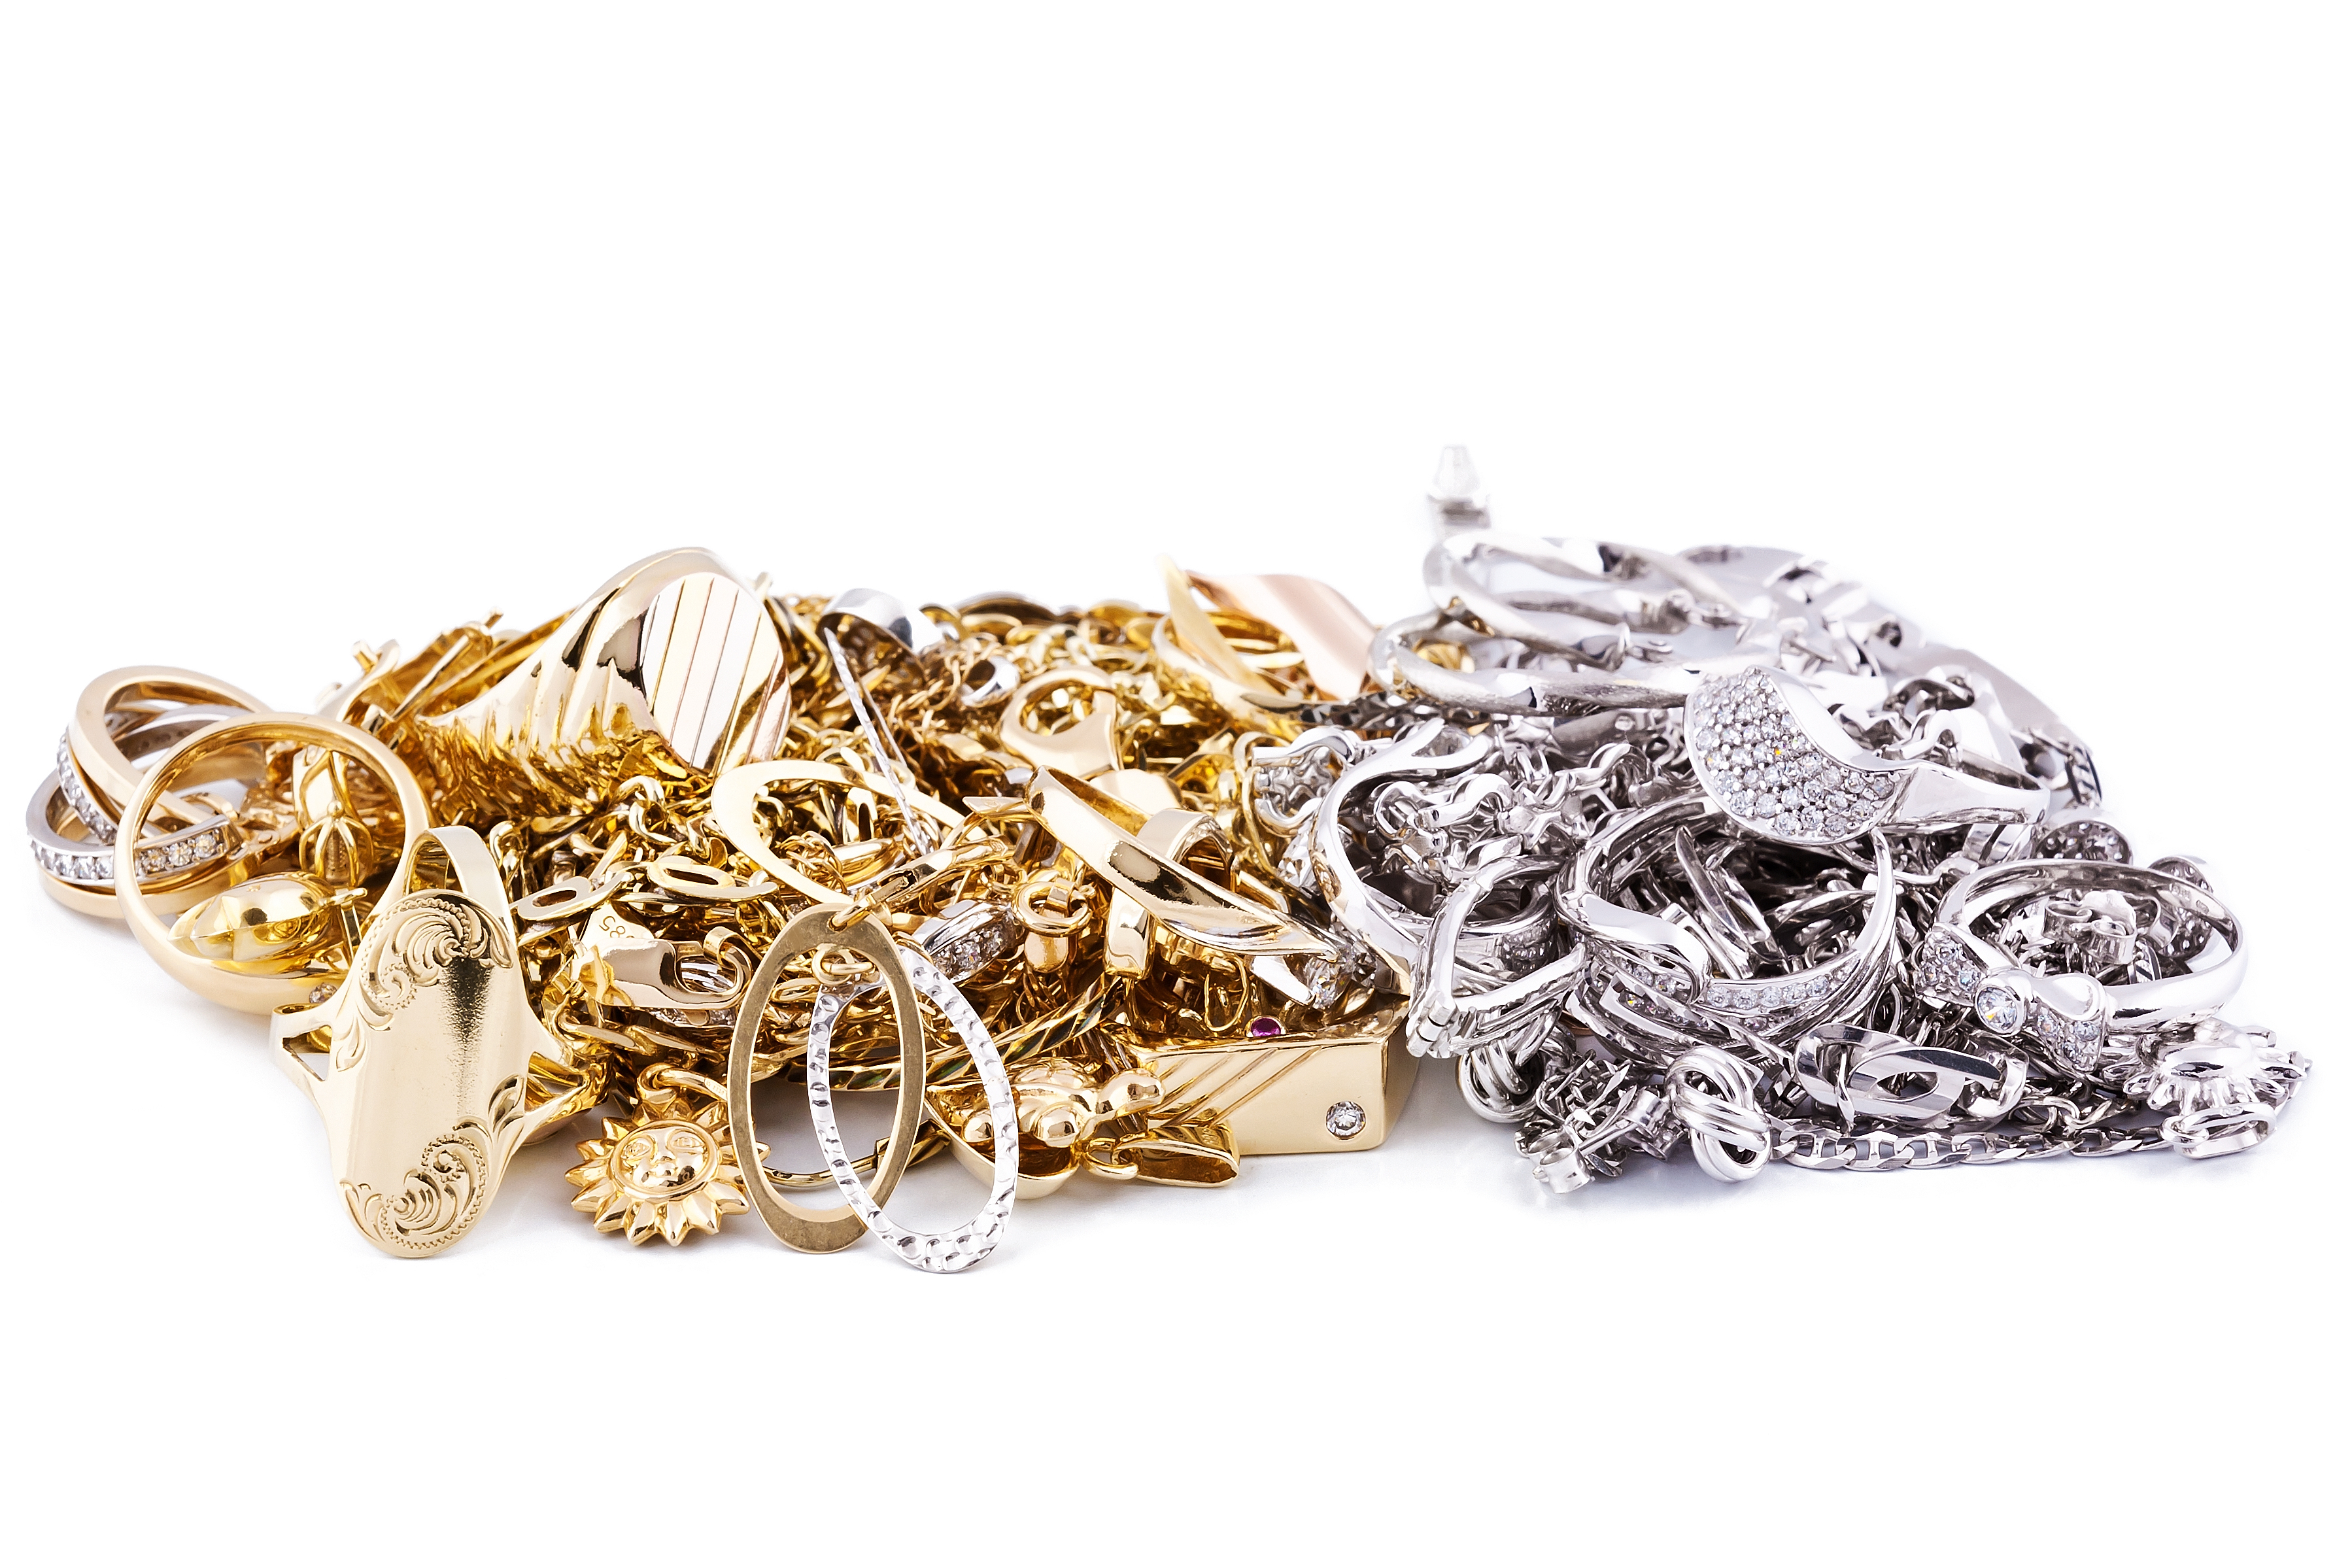 Sell Us Your Old Gold And Diamonds